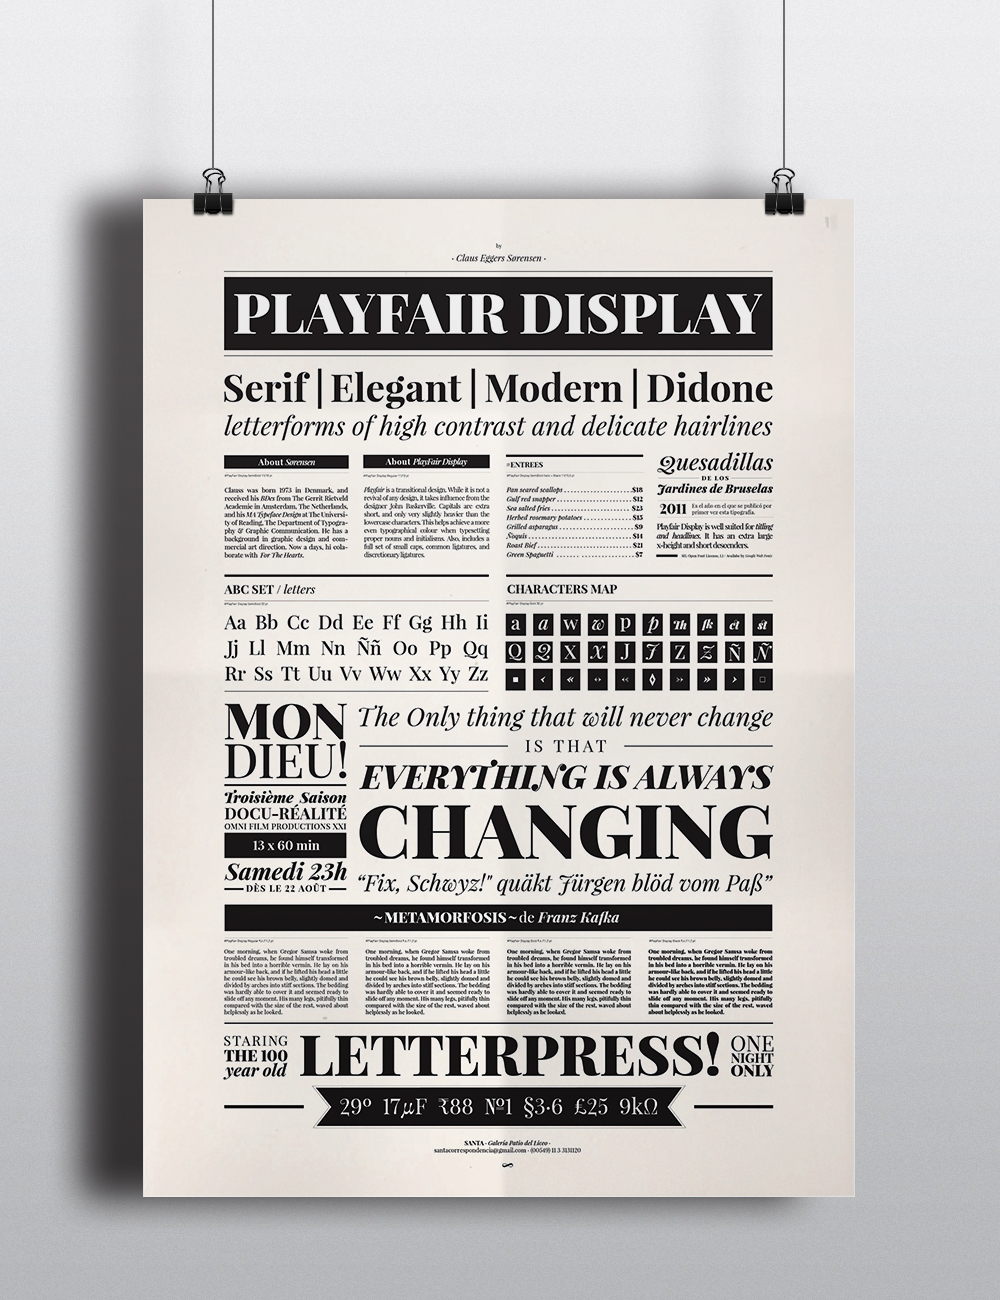 PlayFair Display Type Specimen